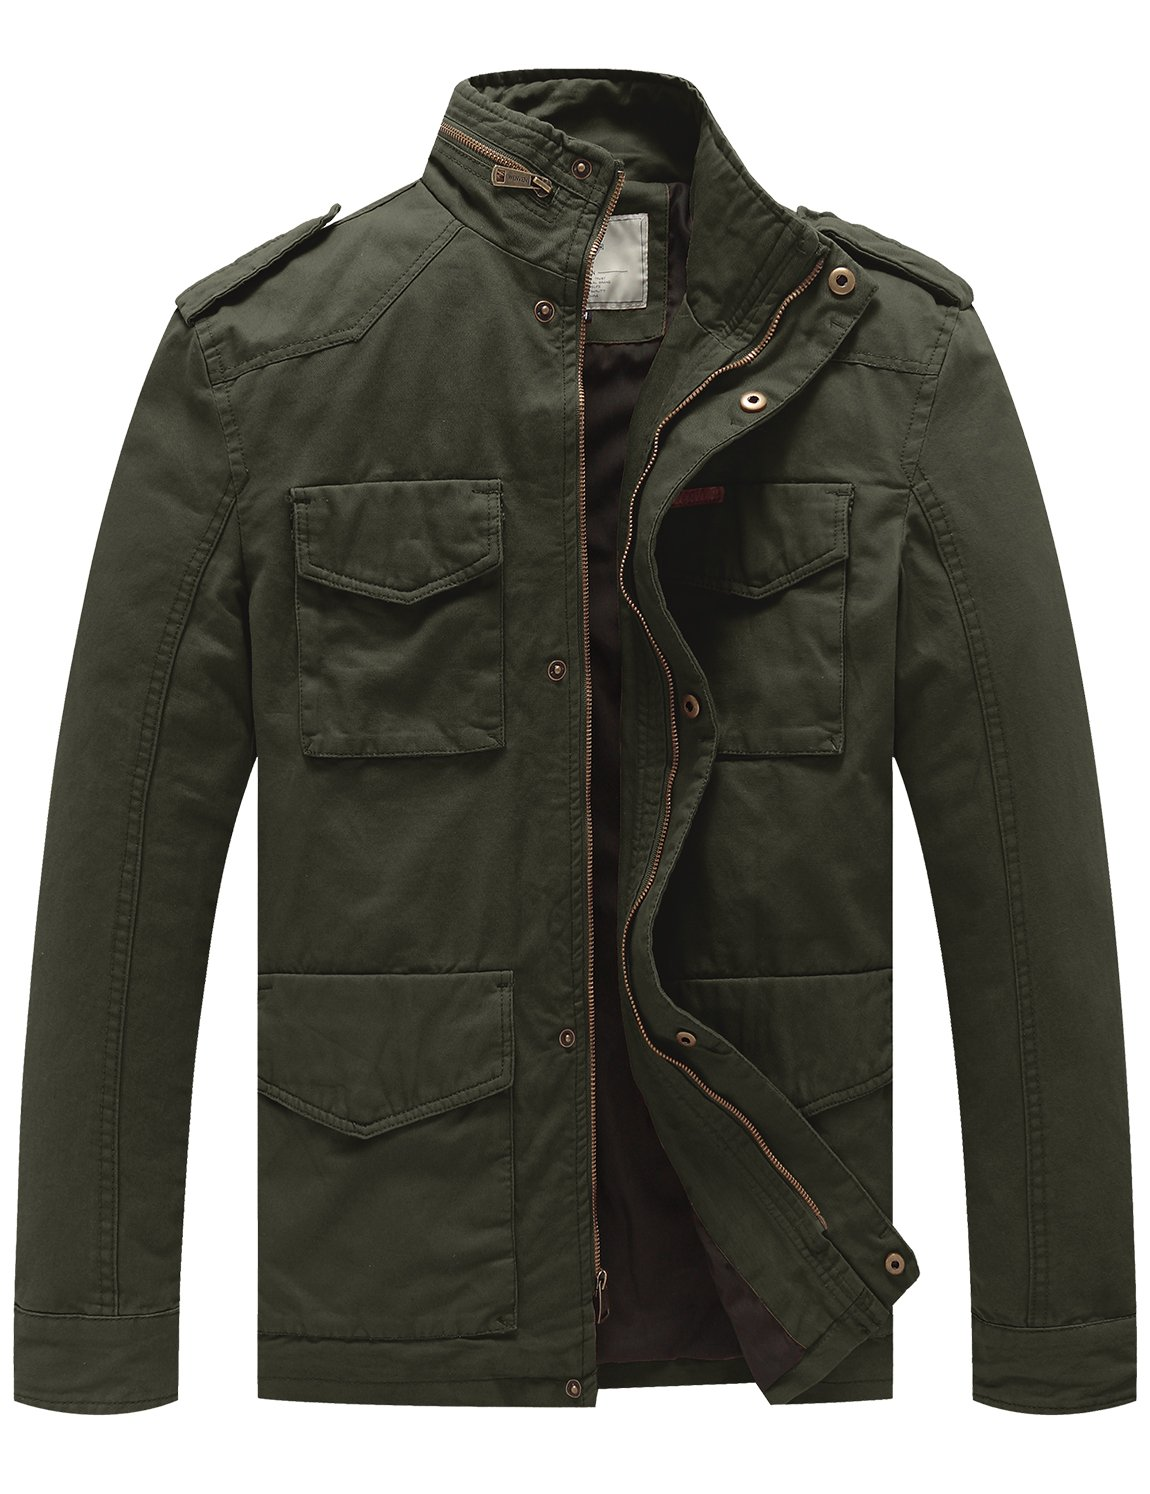 WenVen Men's Stand Collar Cotton Field Jacket (Army Green, S) by WenVen